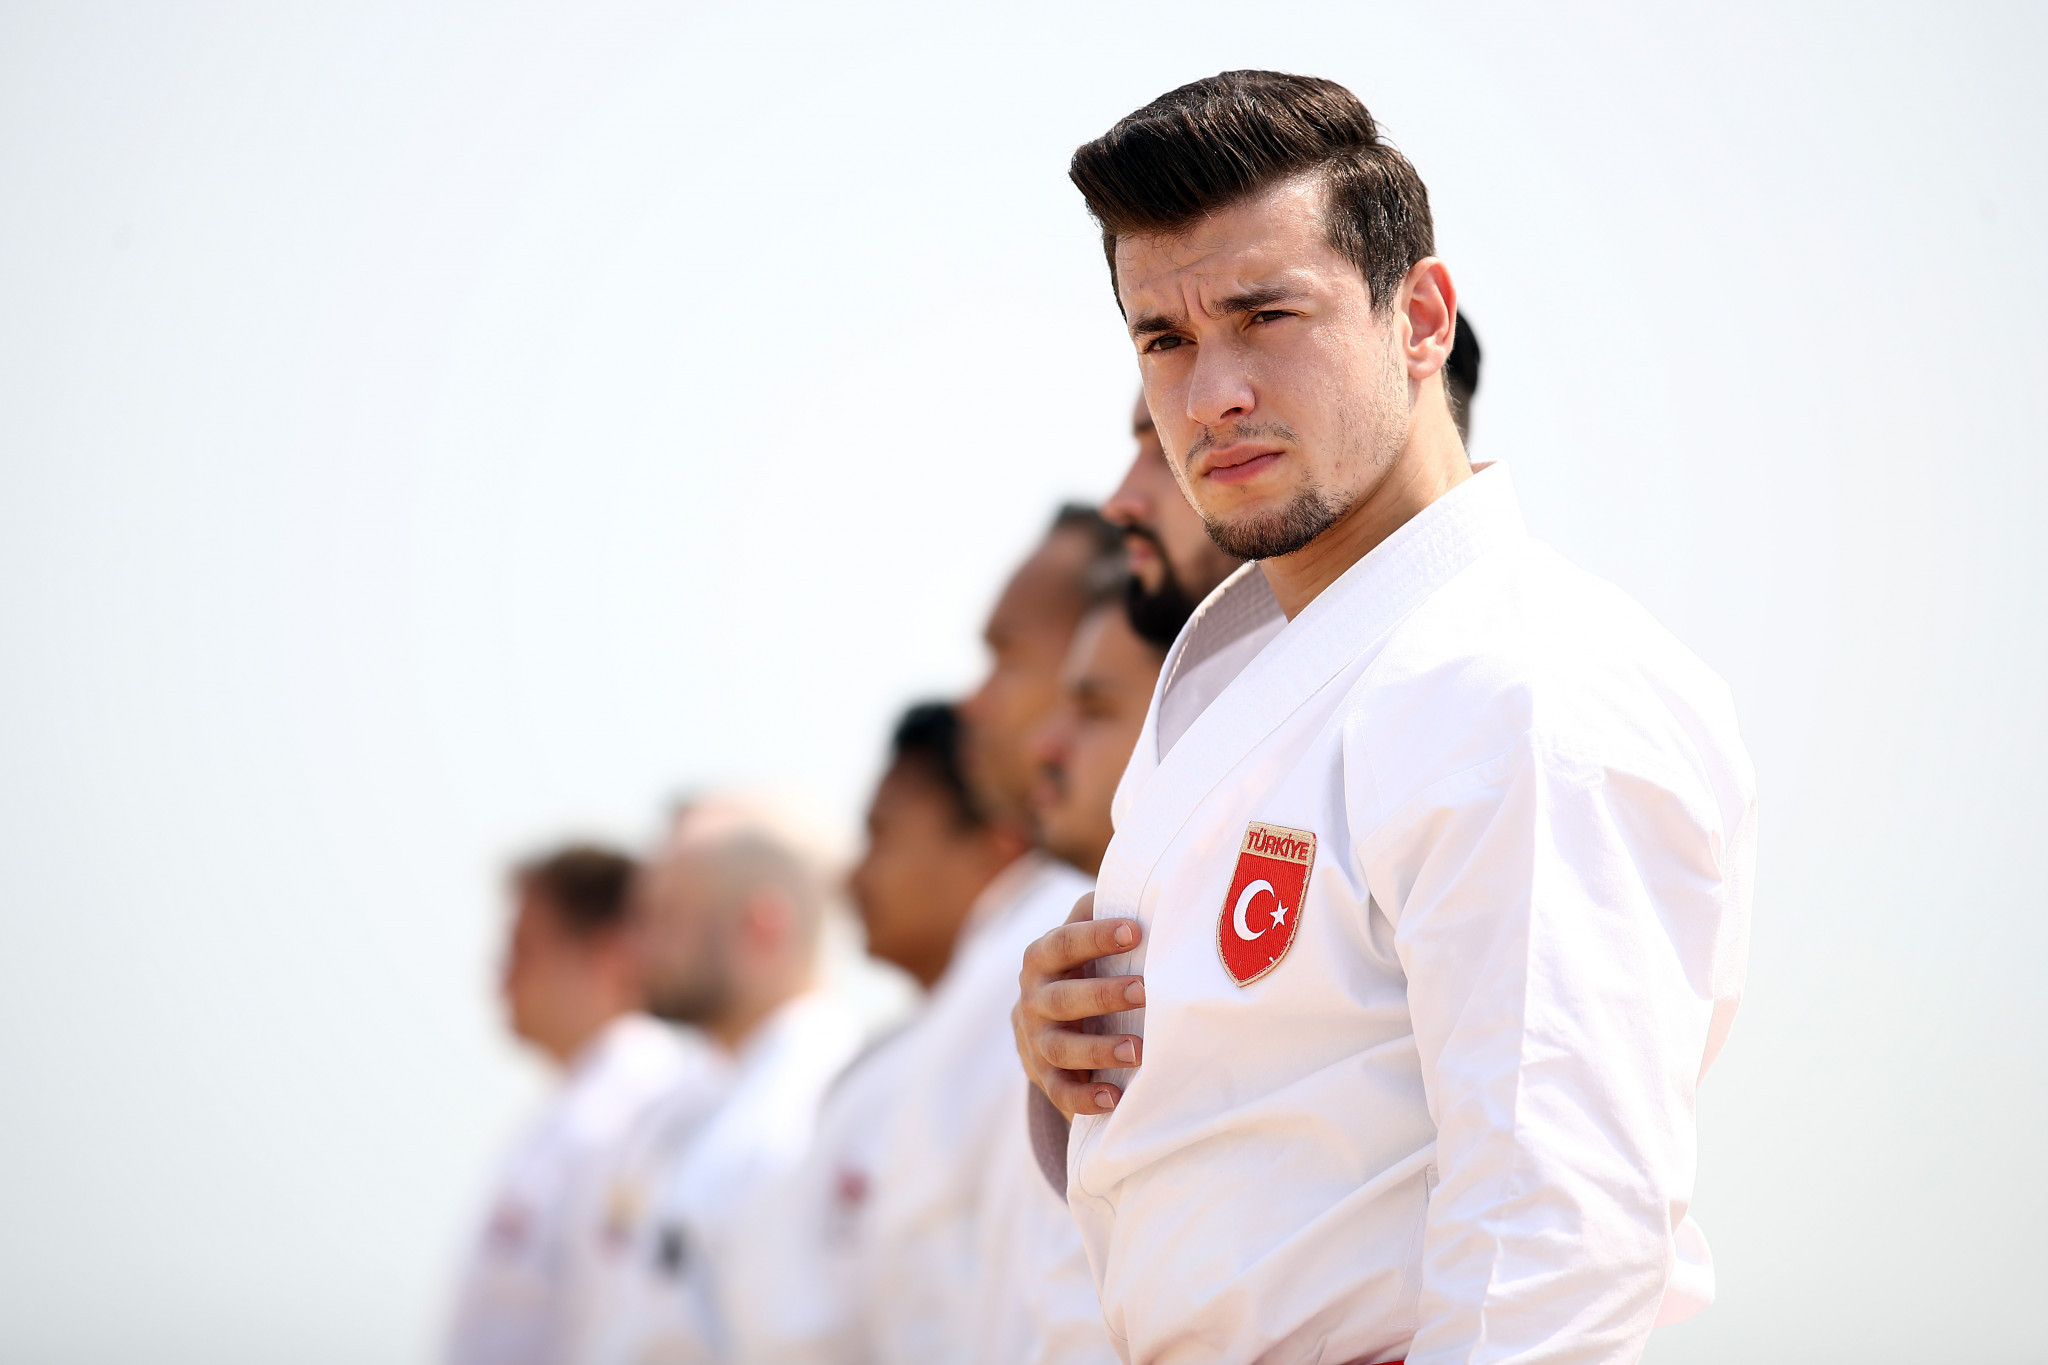 Turkey win men's team kata and finish European Karate Championships with most medals